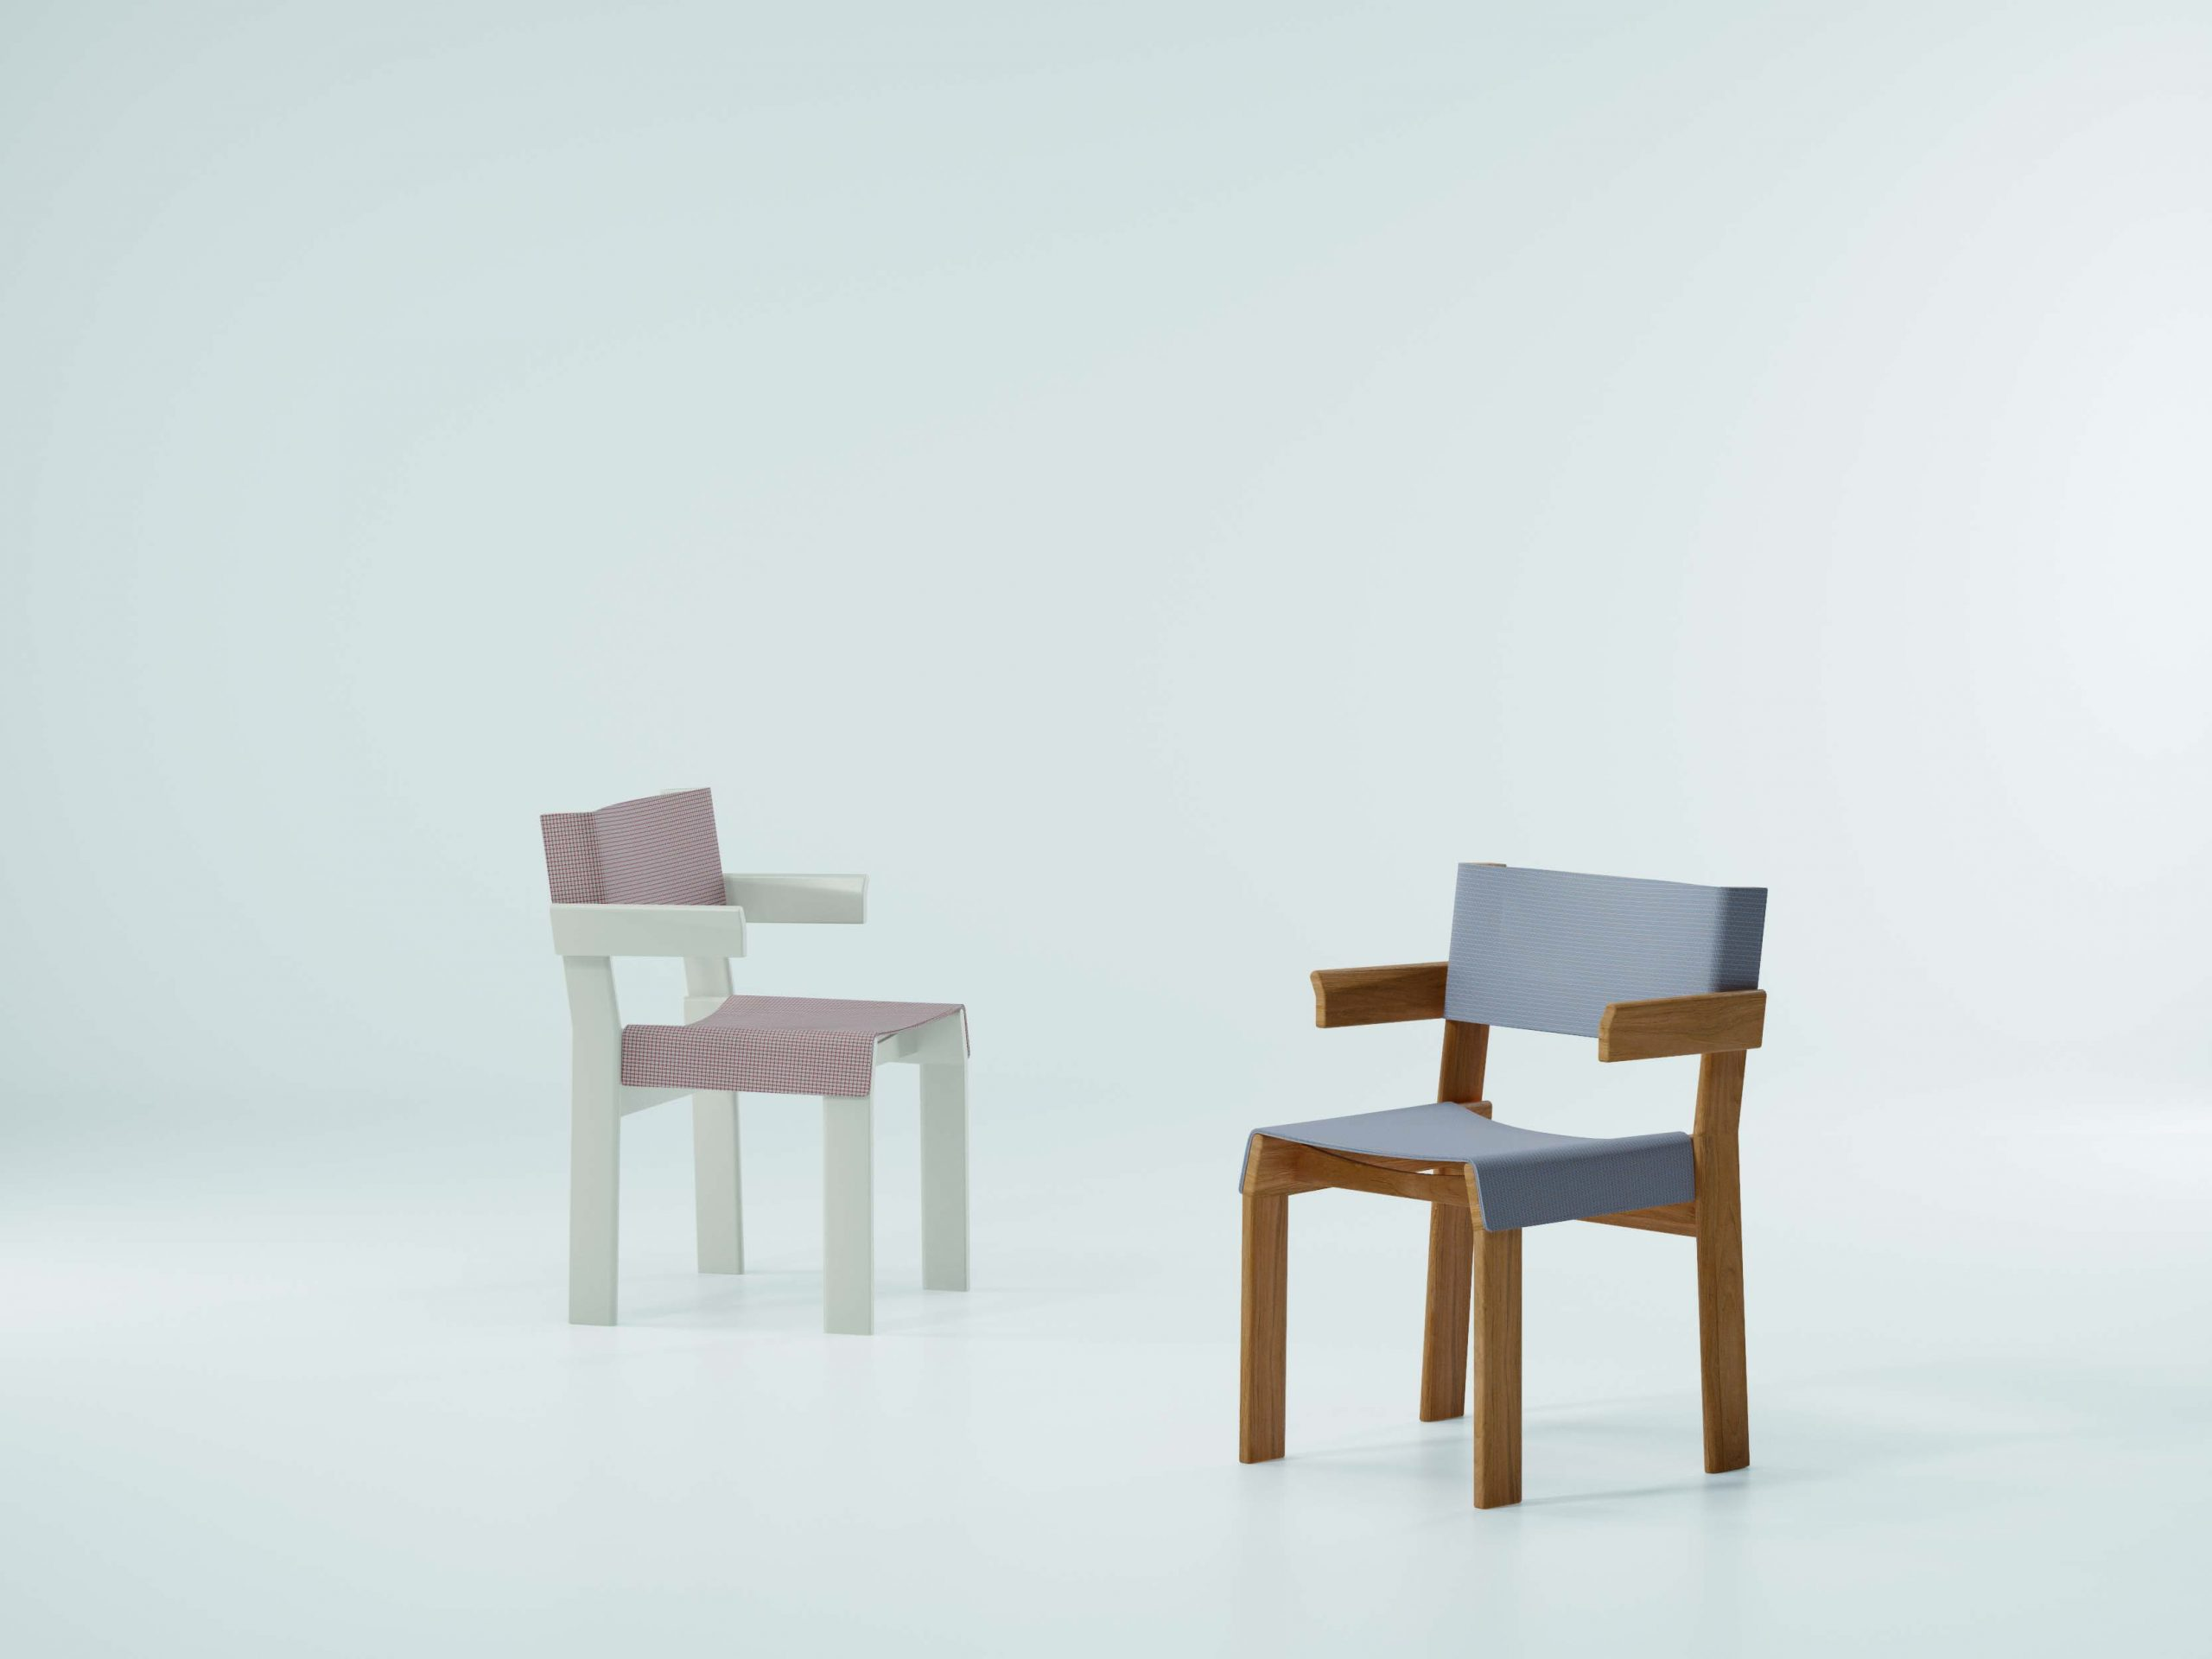 patricia urquiola Patricia Urquiola: A Modern Chairs Collection for Everyone Patricia Urquiola A Modern Chairs Collection for Everyone 9 scaled